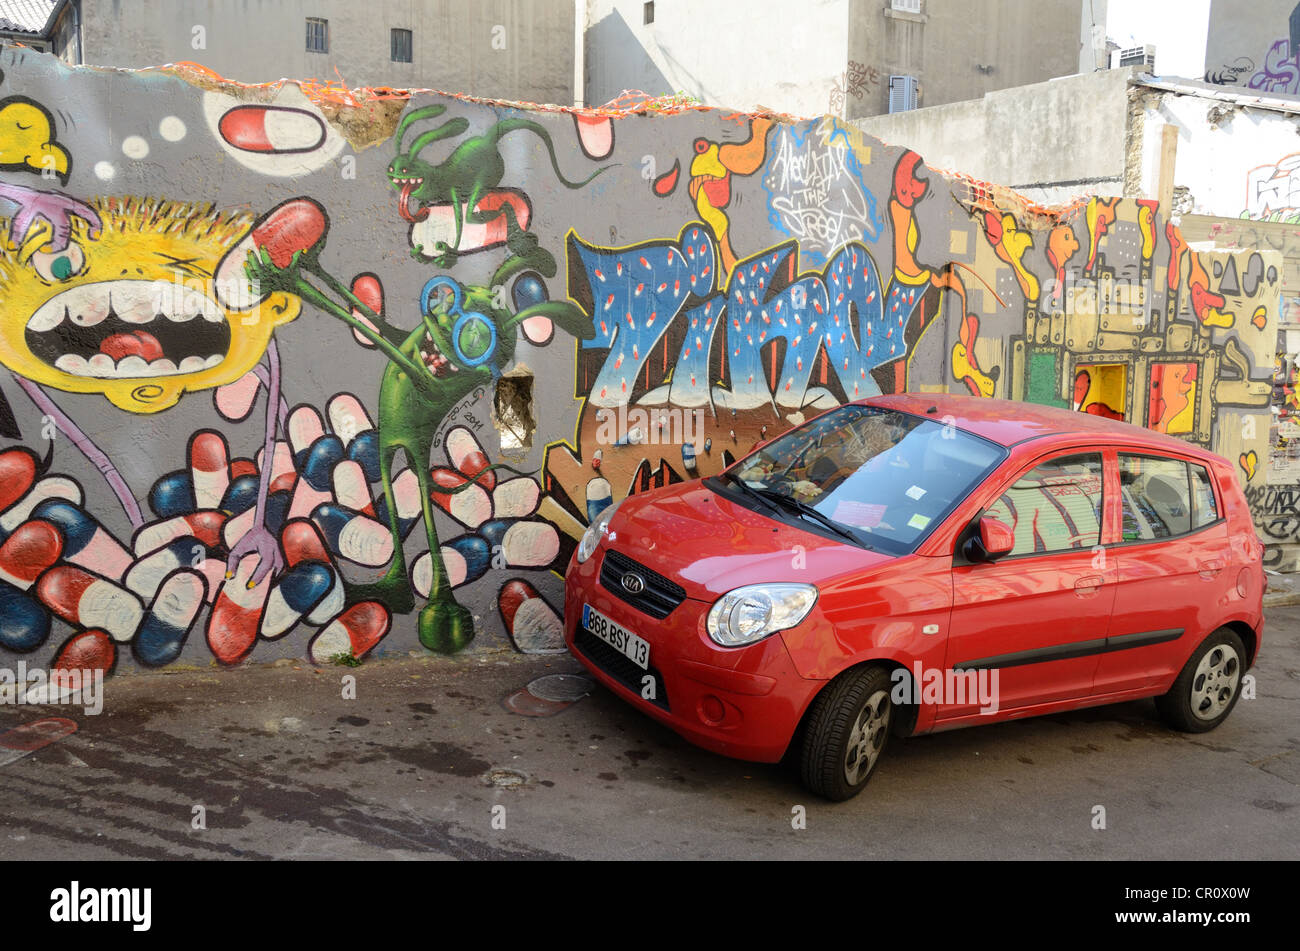 Red KIA Car and Graffiti Wall Cours Julien Marseille France - Stock Image